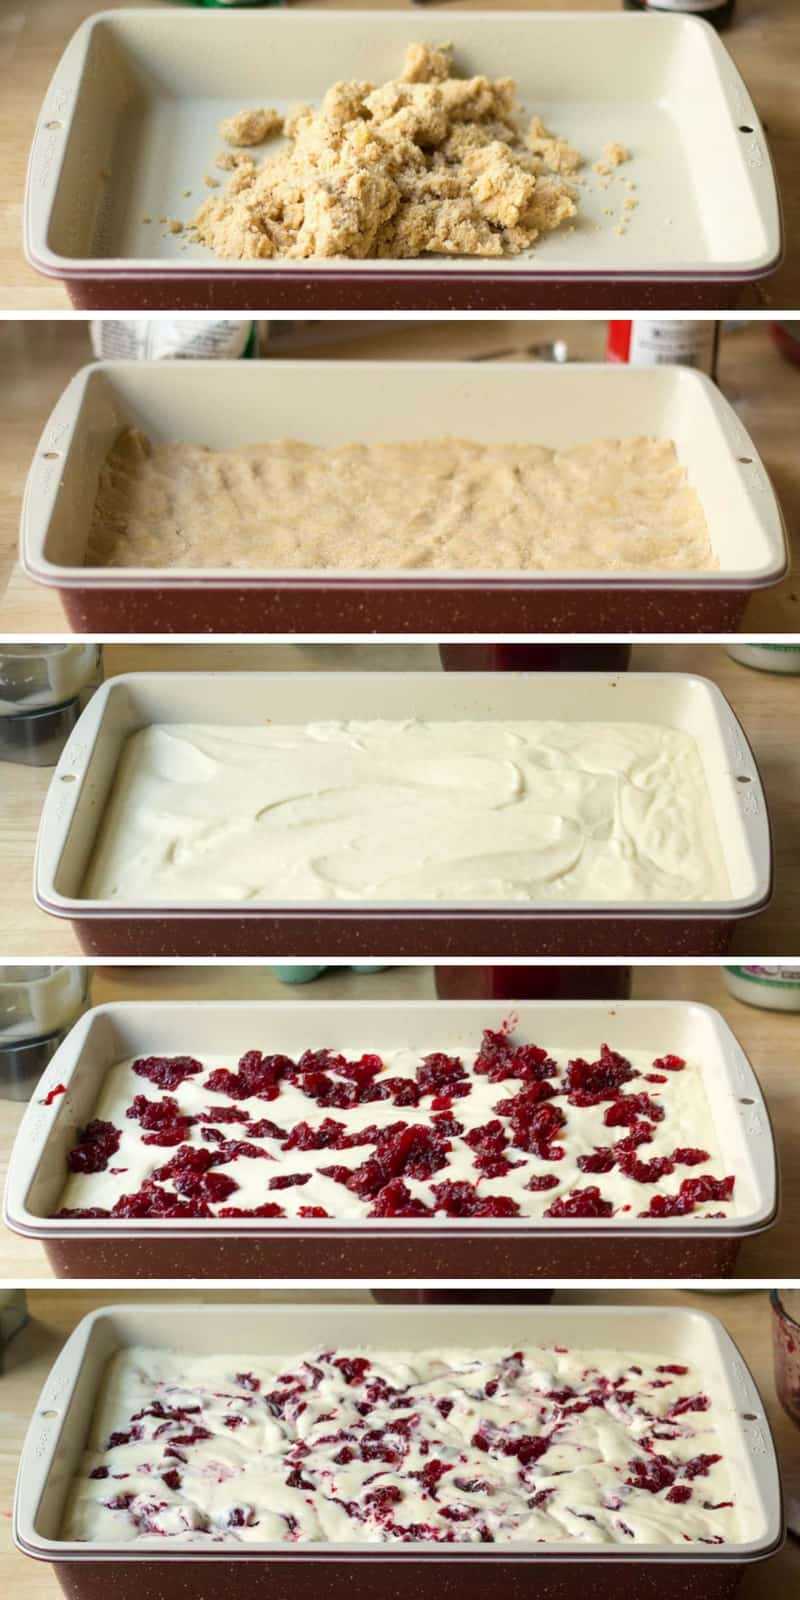 collage of images showing various layers of cranberry swirl cheesecake bars in a casserole dish